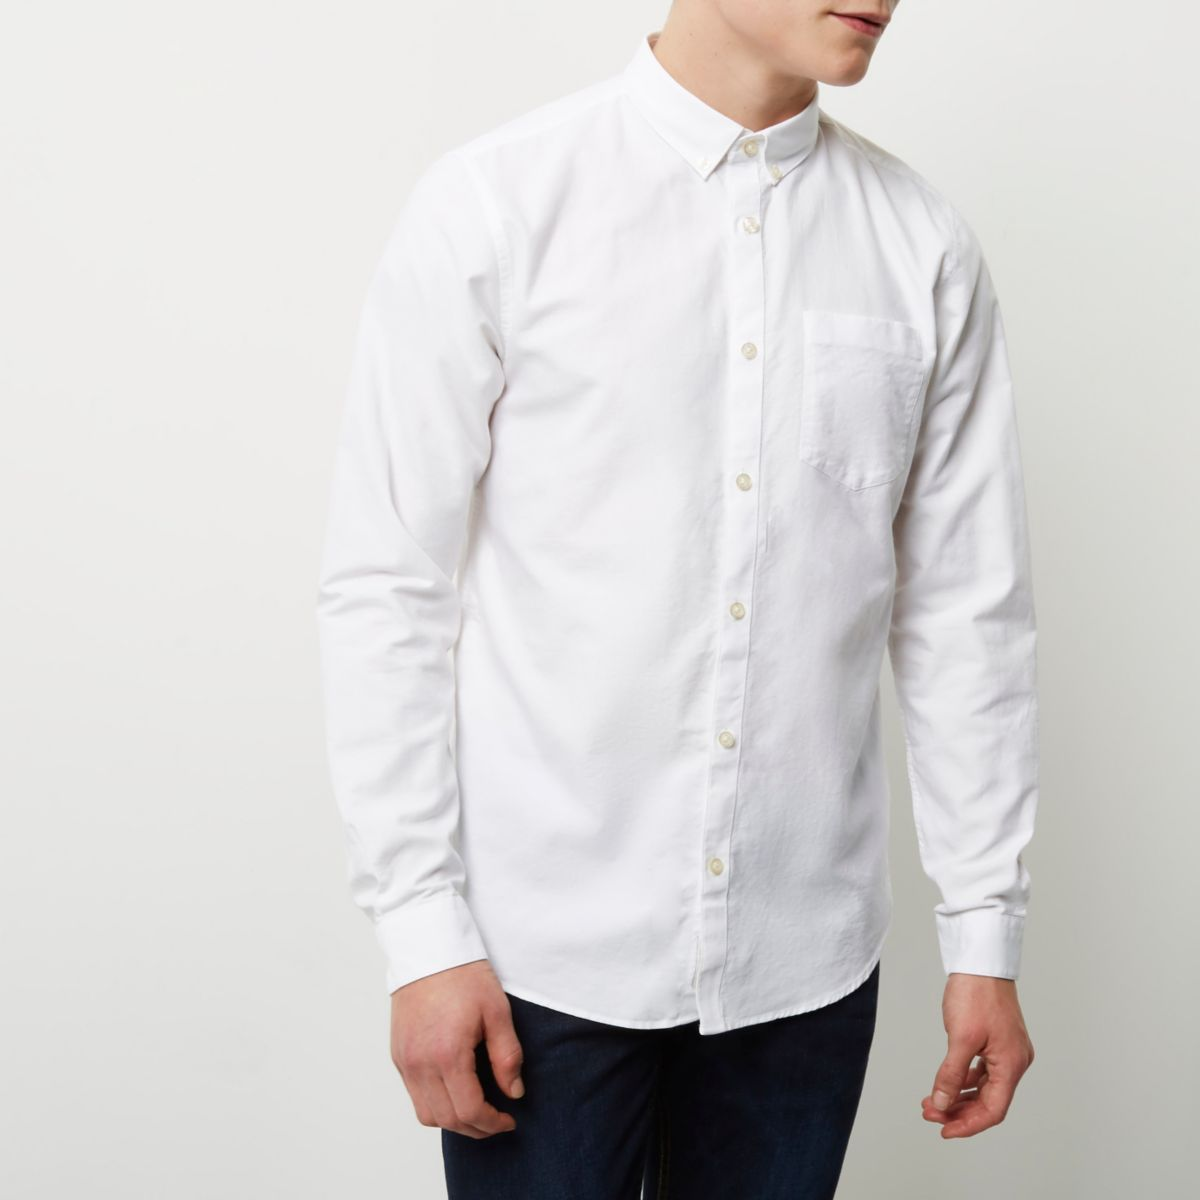 White casual long sleeve Oxford shirt - Long Sleeve Shirts ...